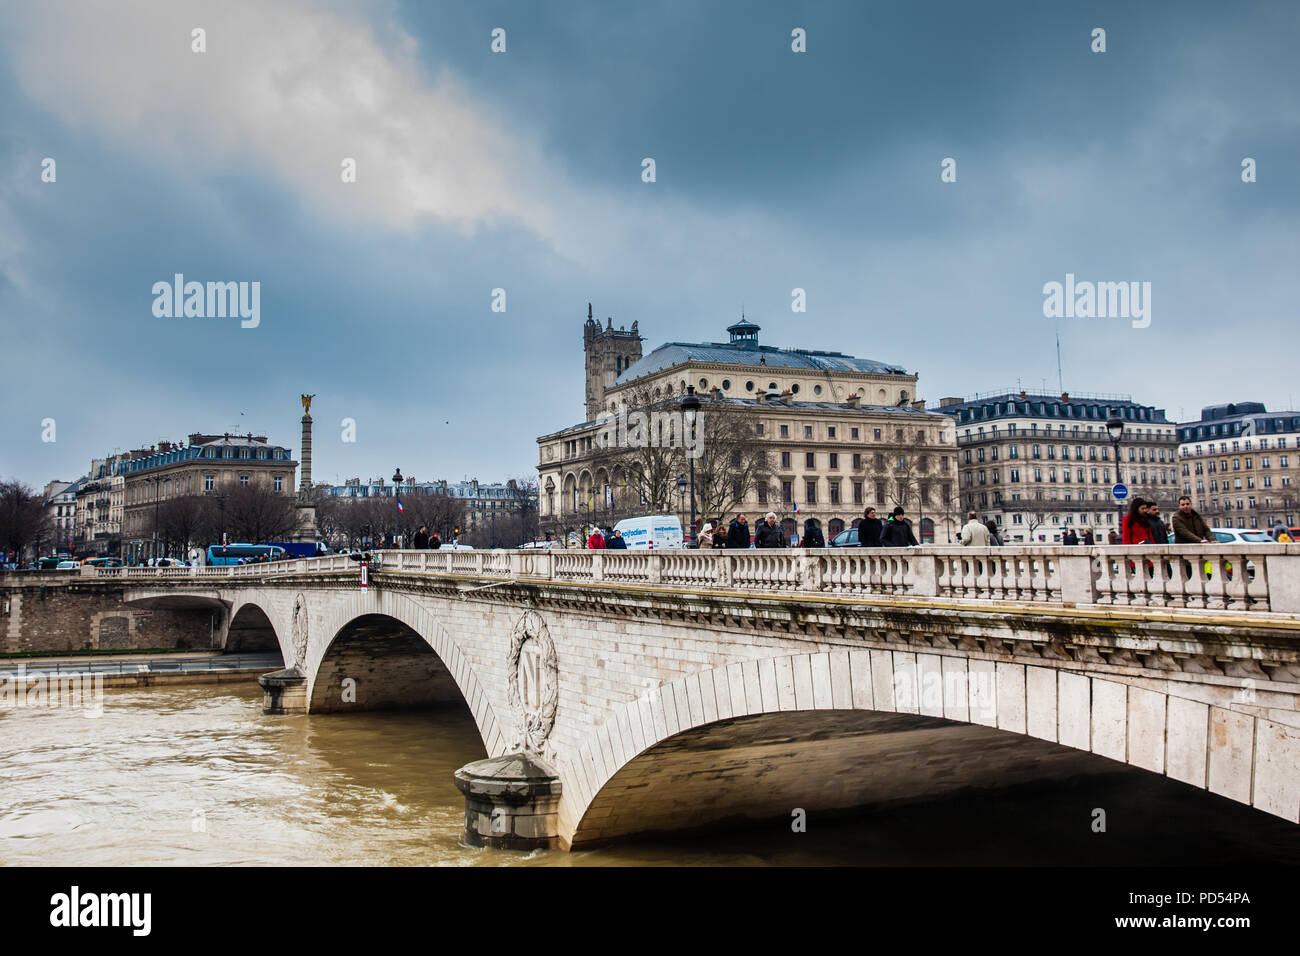 Pont au Change over the Seine river in a cold winter day - Stock Image